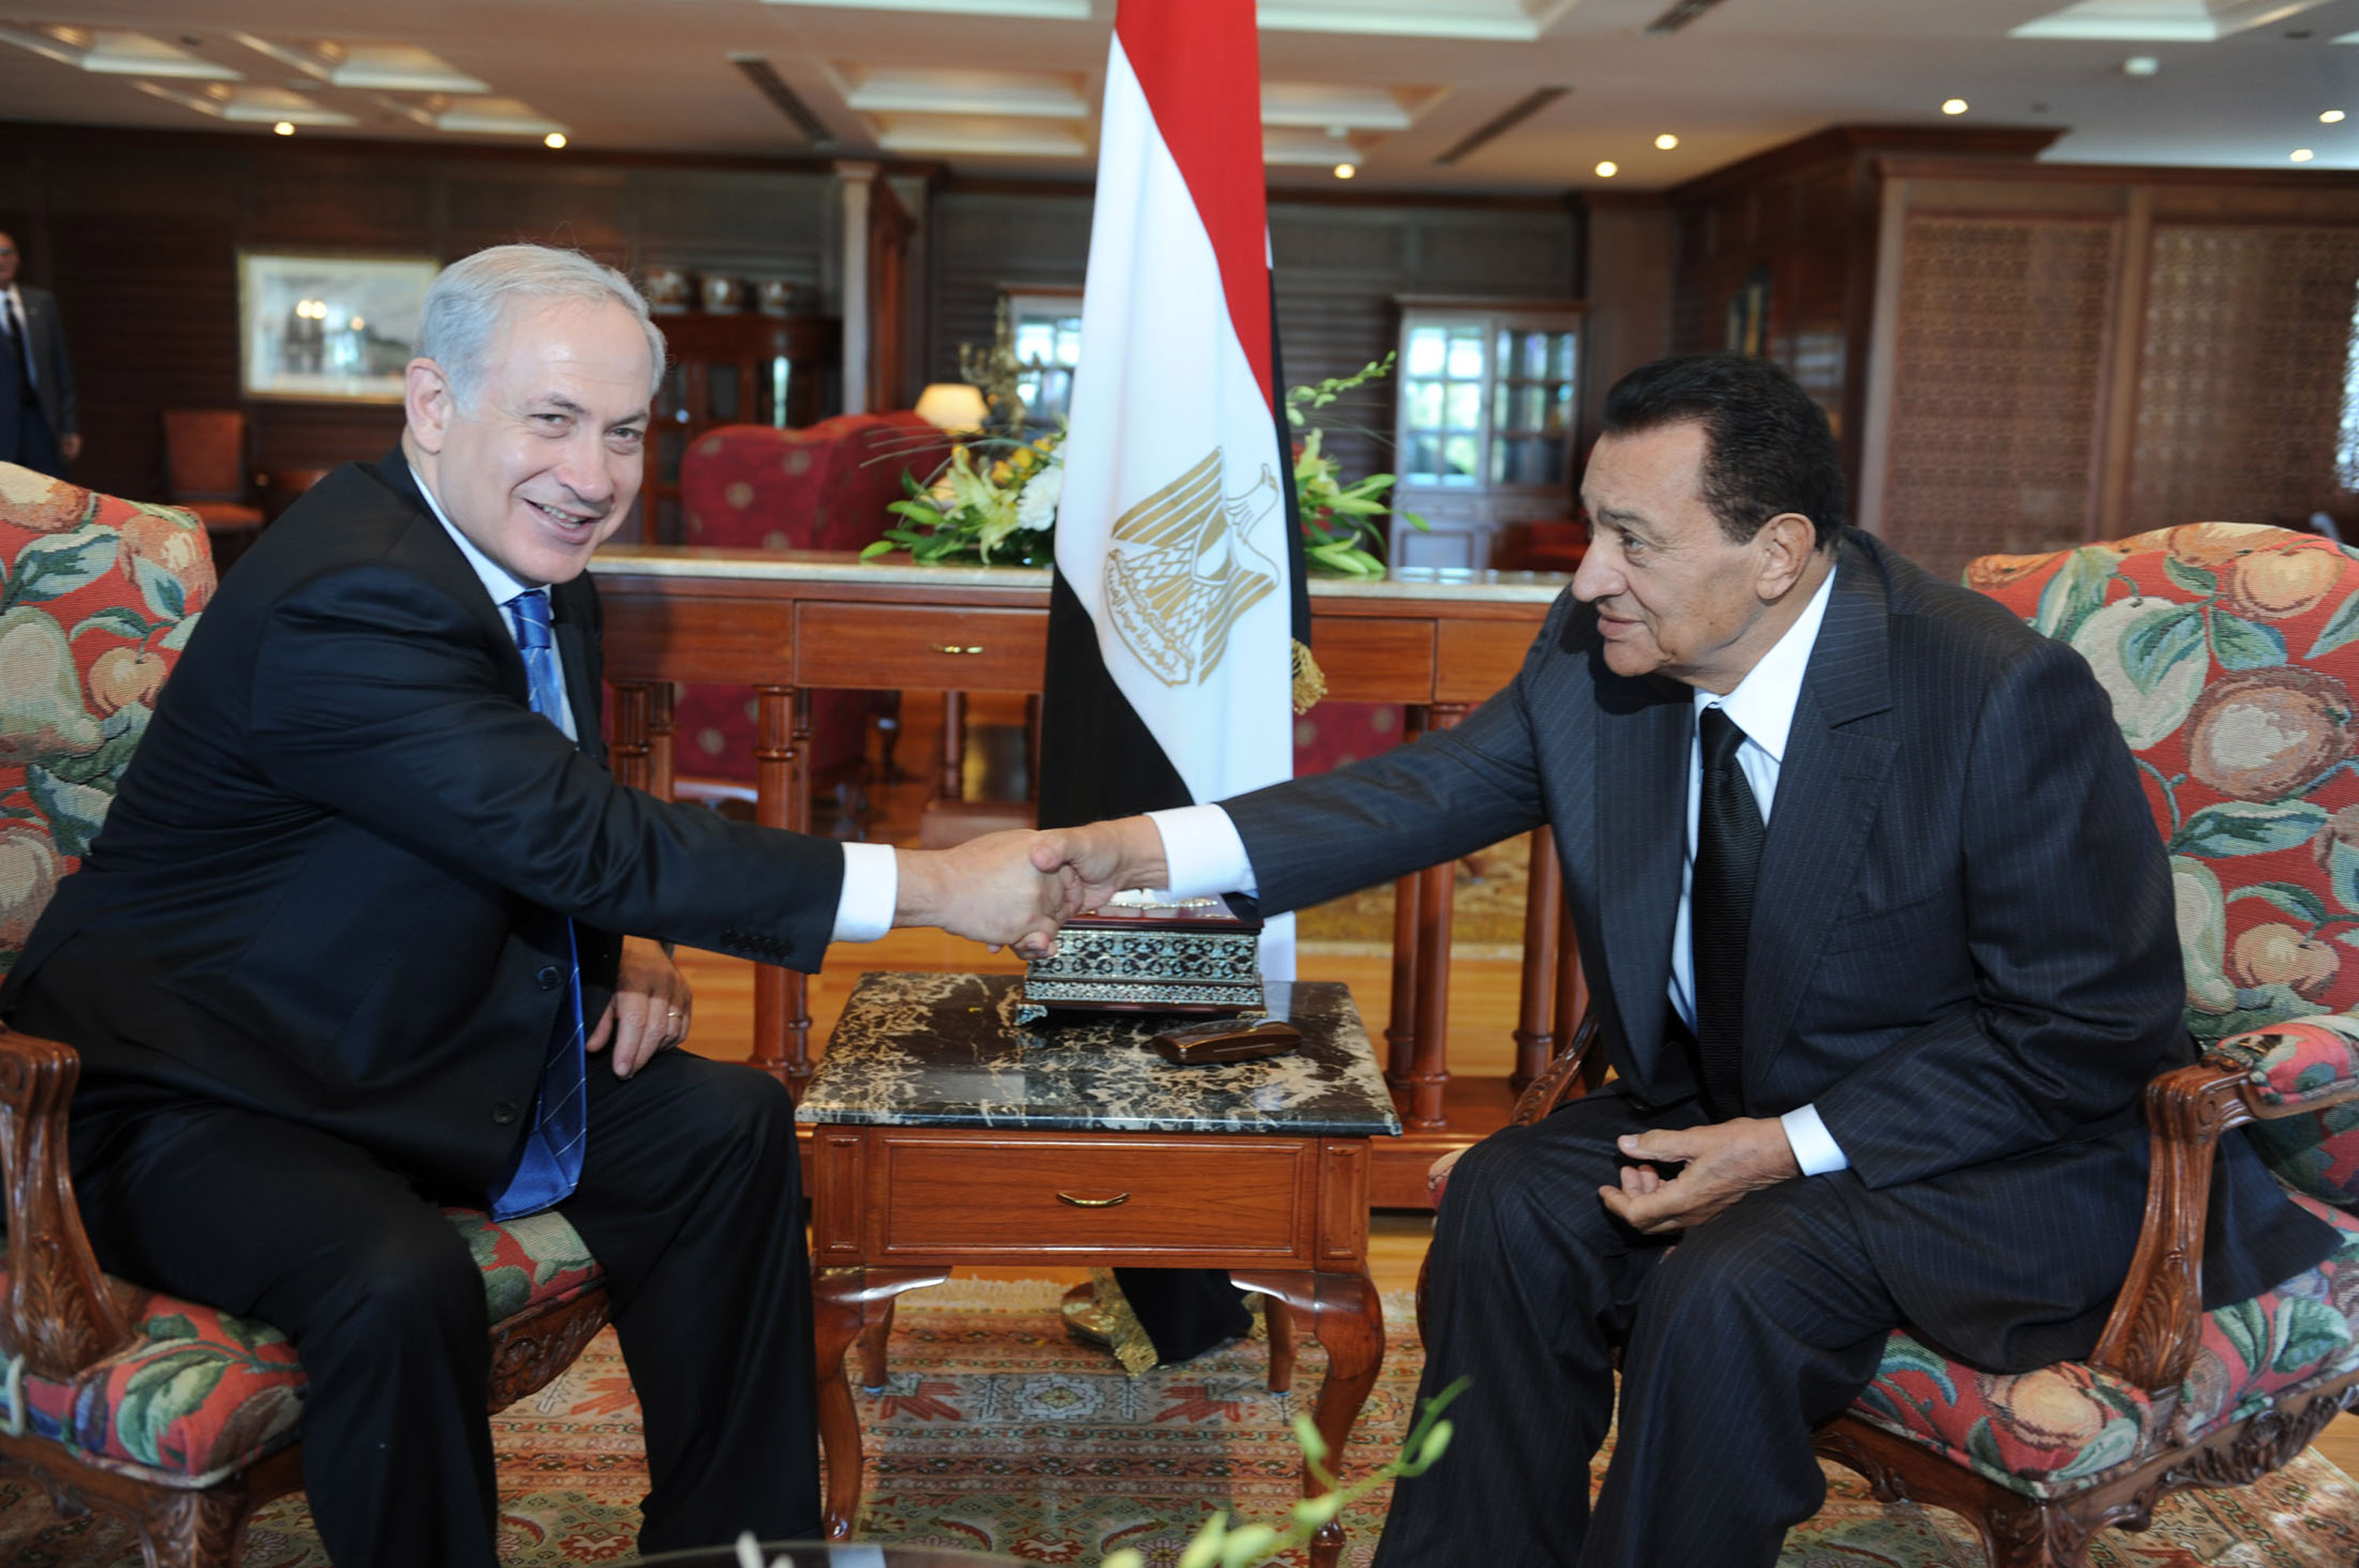 Netanyahu and Mubarak met several times; this image is from a meeting in Egypt in 2010.